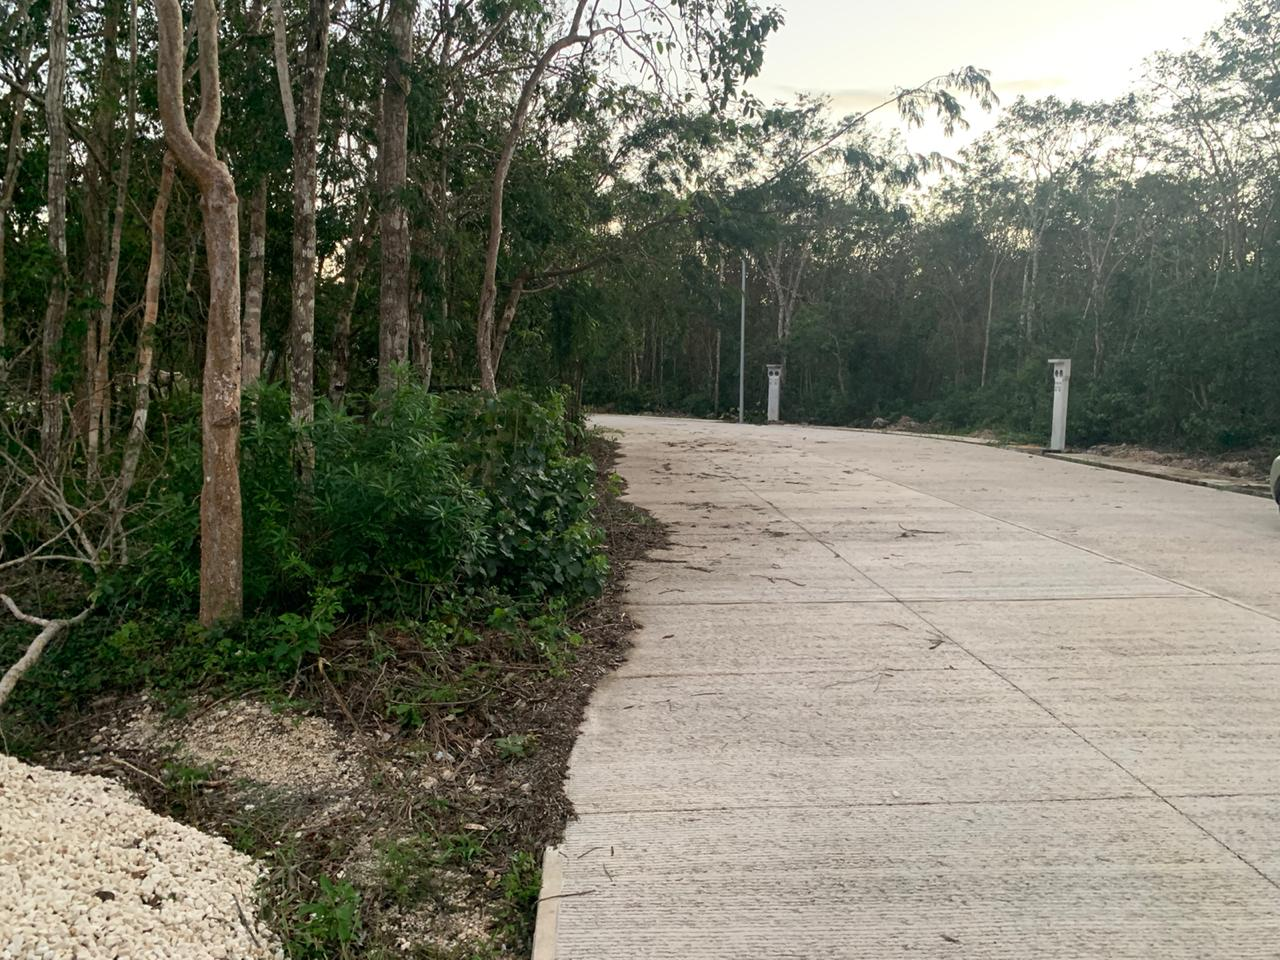 Lot for sale 10 minutes from downtown Playa del Carmen